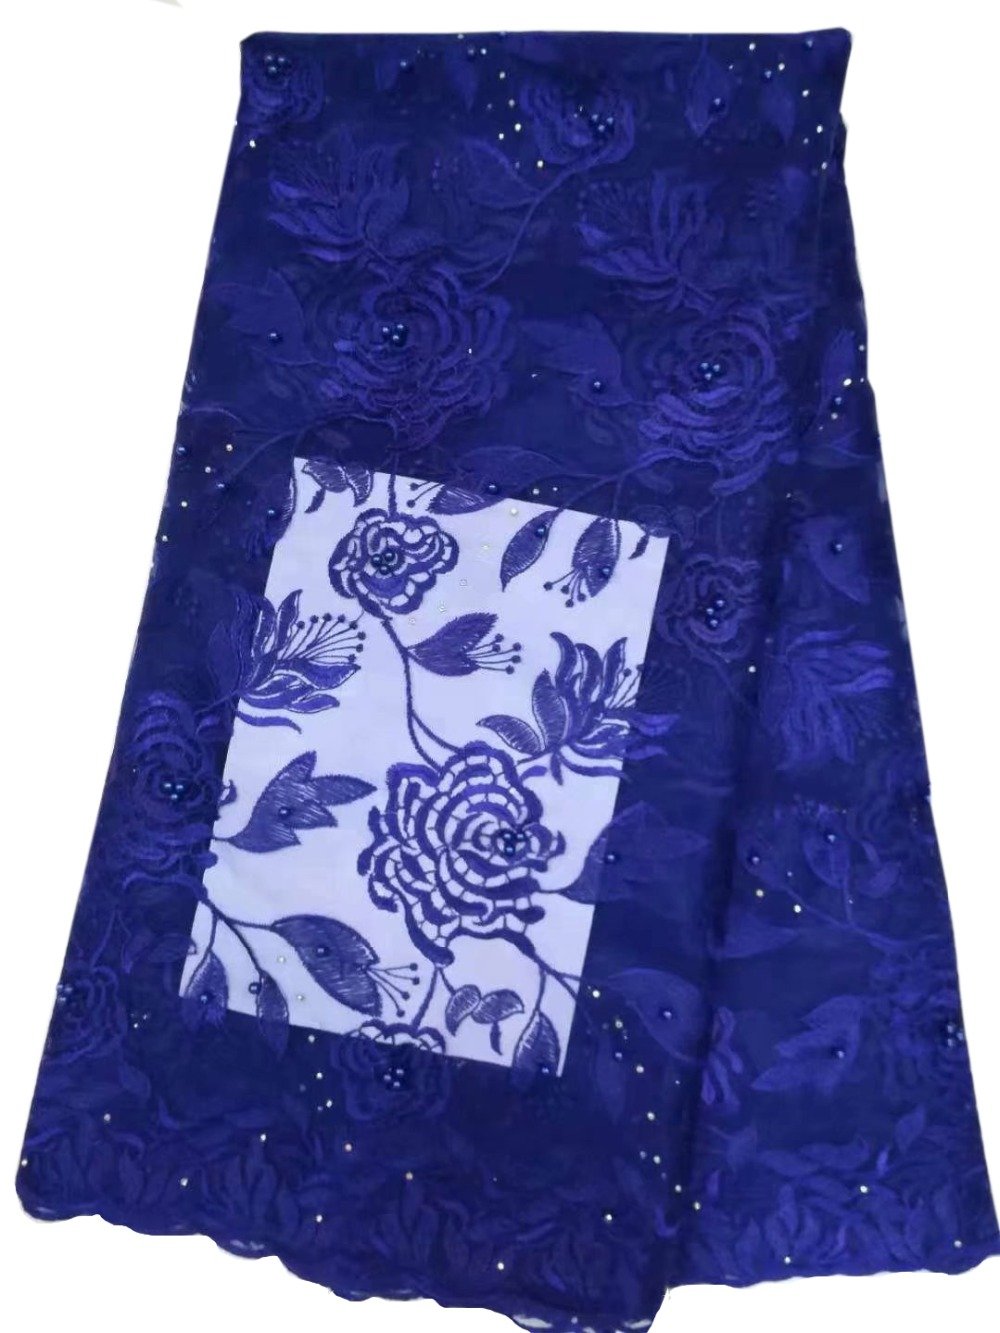 French lace fabrics Blue tulle lace embroidery fabric with beads stones Latest style african lace 5yards BE47 in Lace from Home Garden